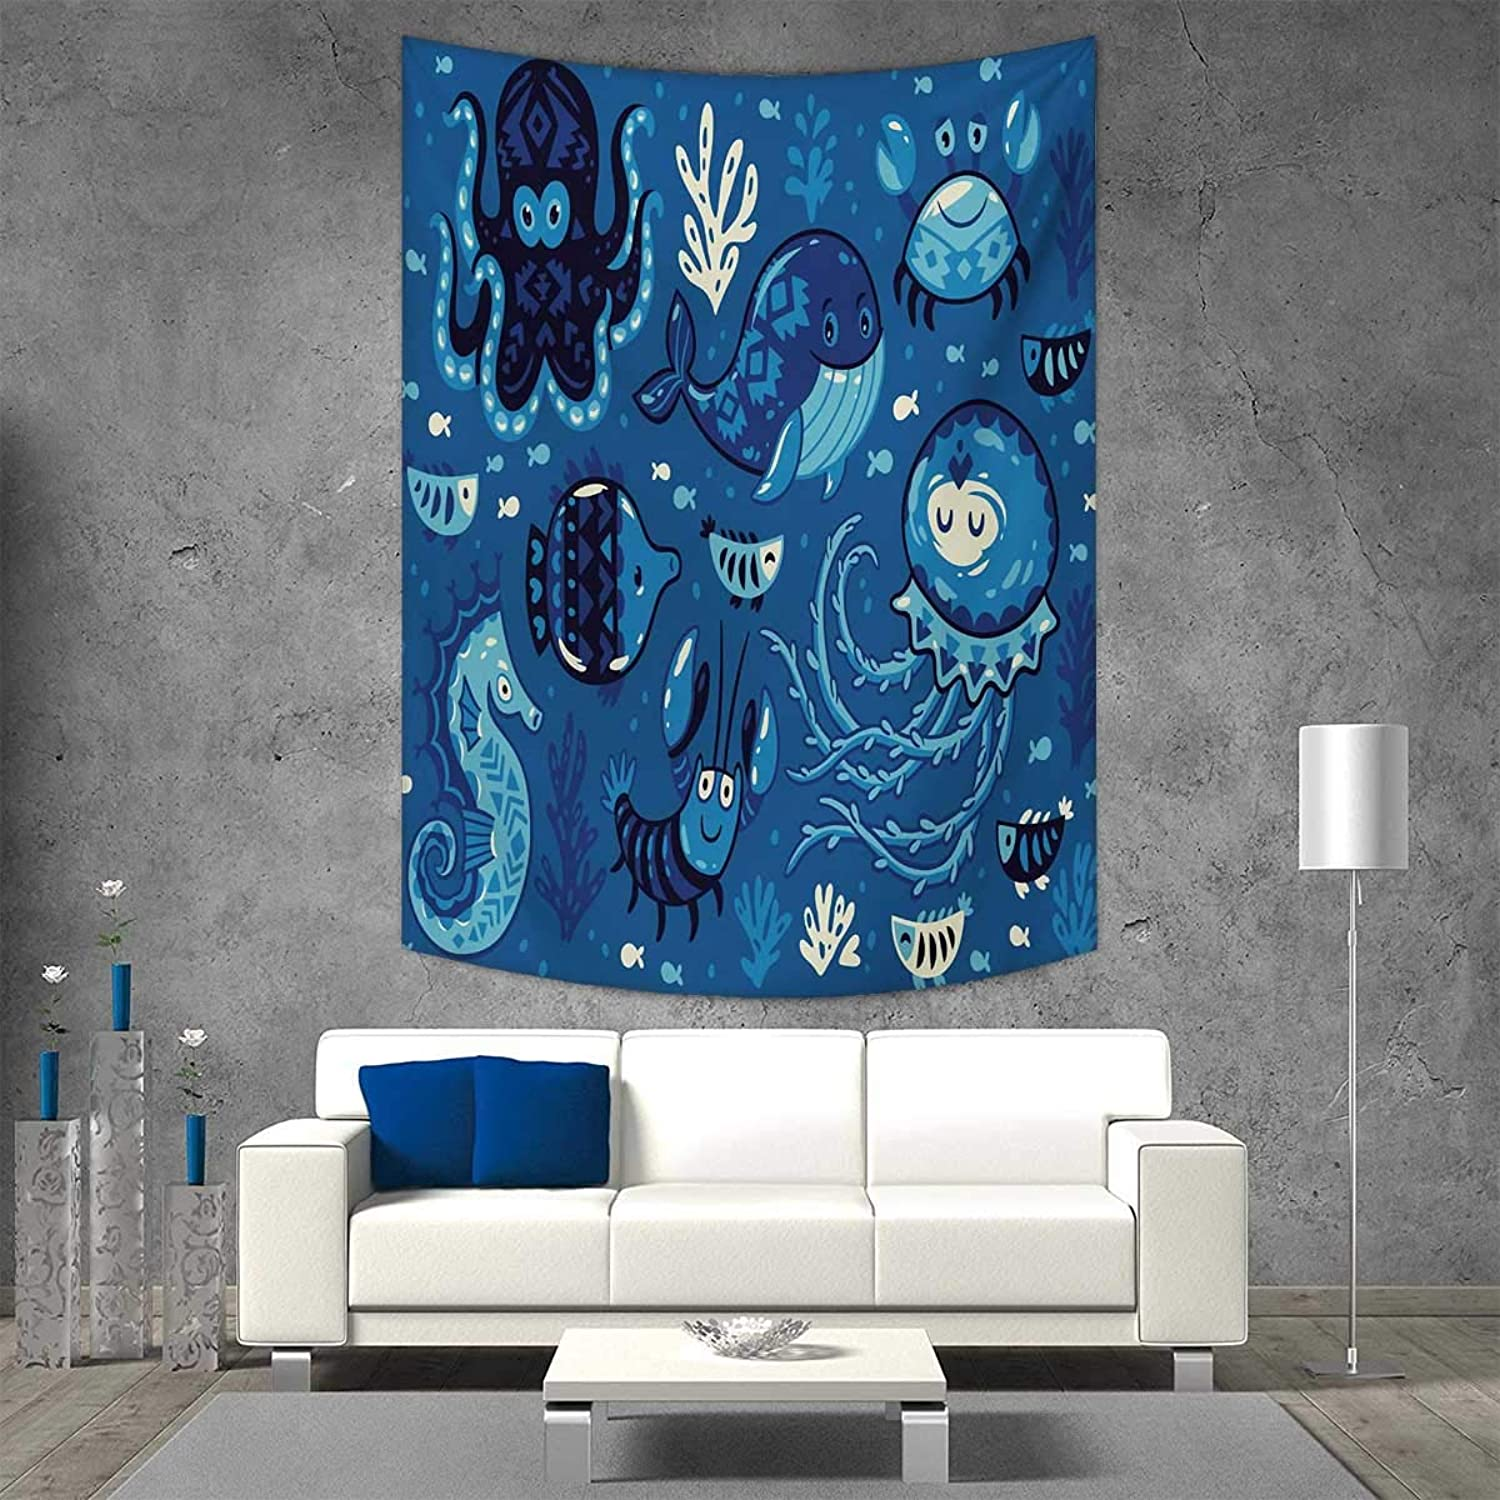 Smallbeefly Ocean greenical Version Tapestry Deep Sealife Cute Sweet Cartoon Style Animals Little Whale Fish Octopus Moss Print Throw, Bed, Tapestry Yoga Blanket 54W x 72L INCH bluee